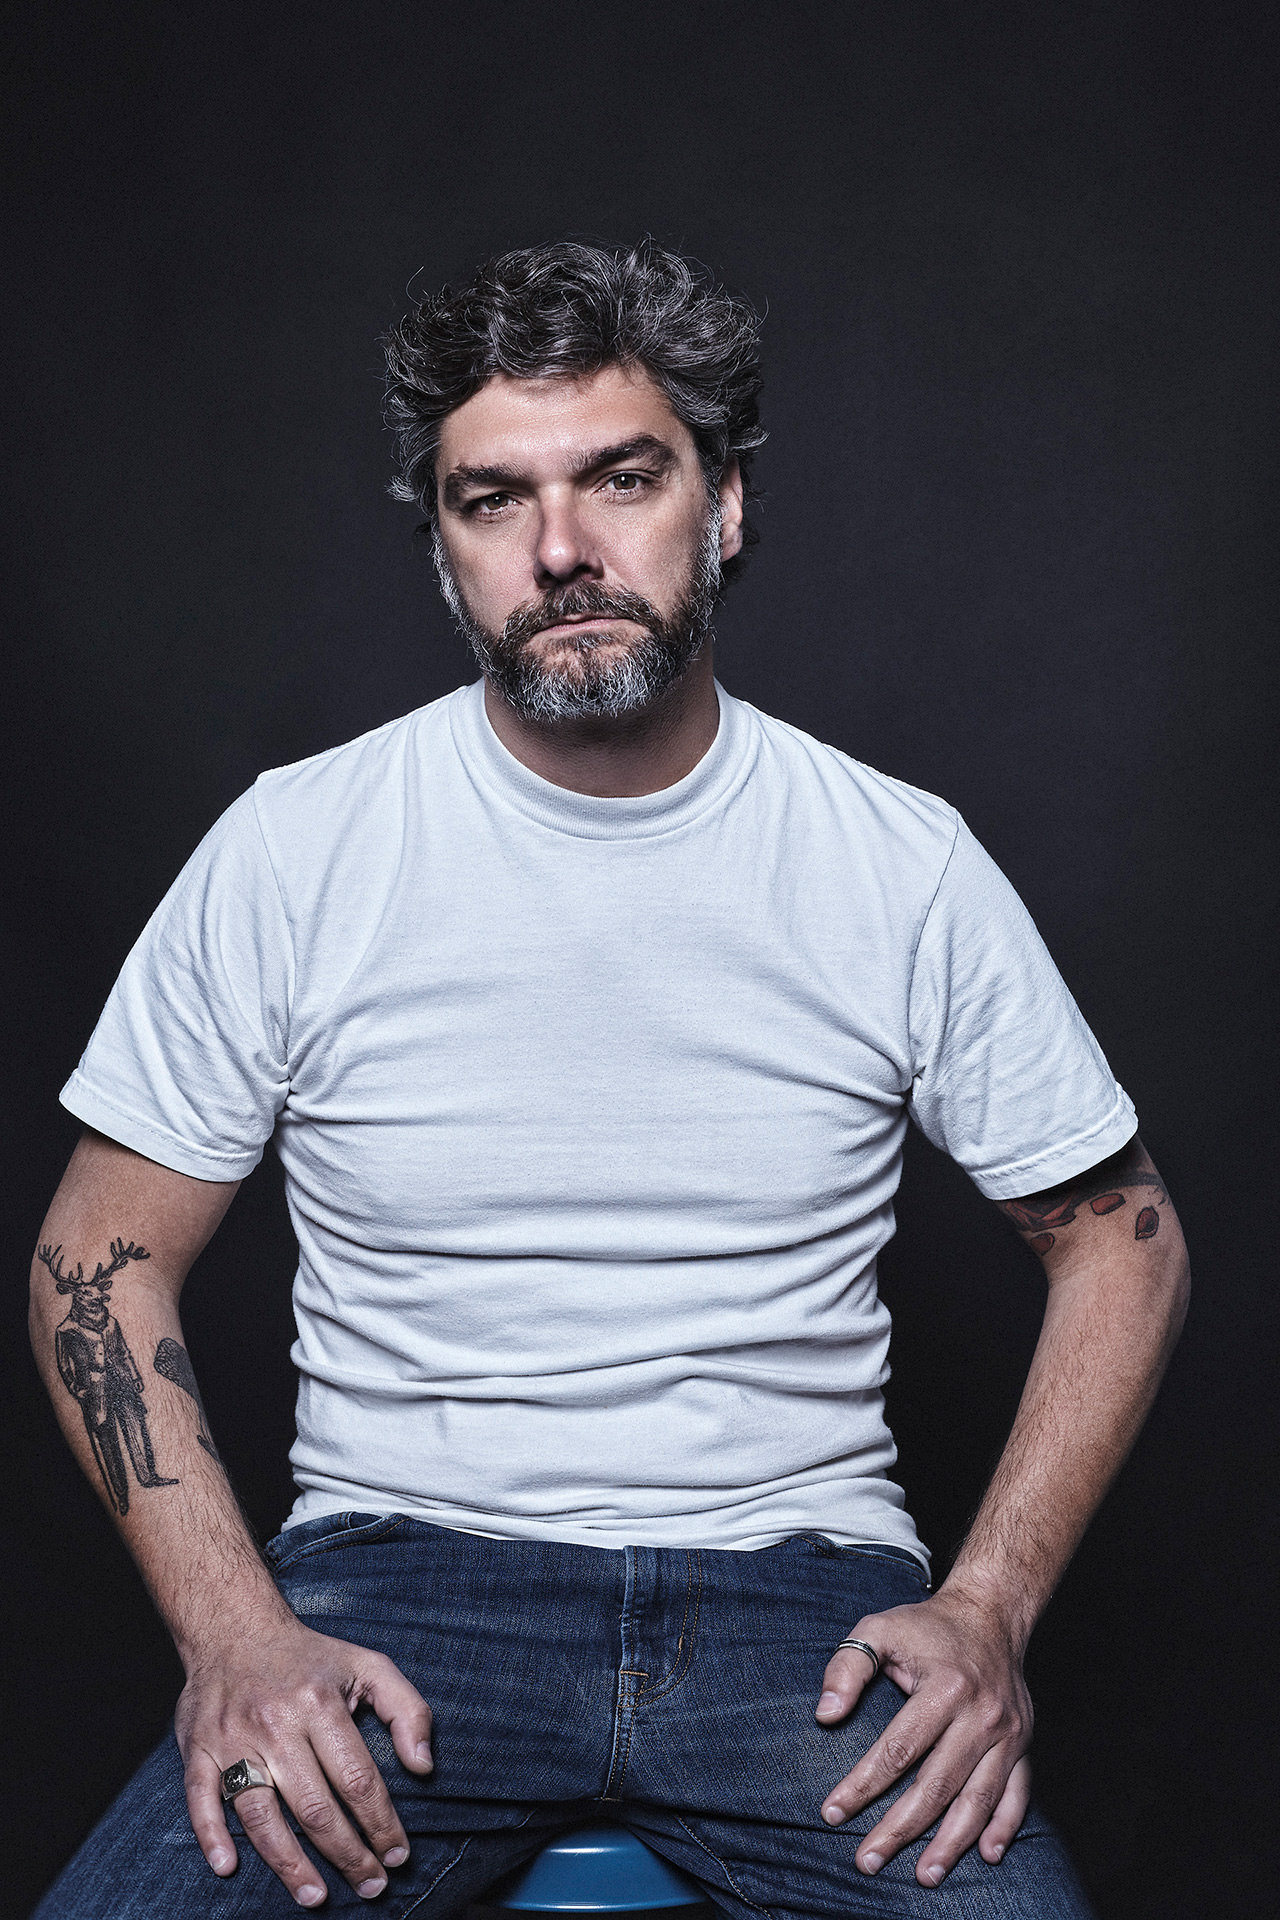 Paco Marcó by portrait photographer Marc Díez